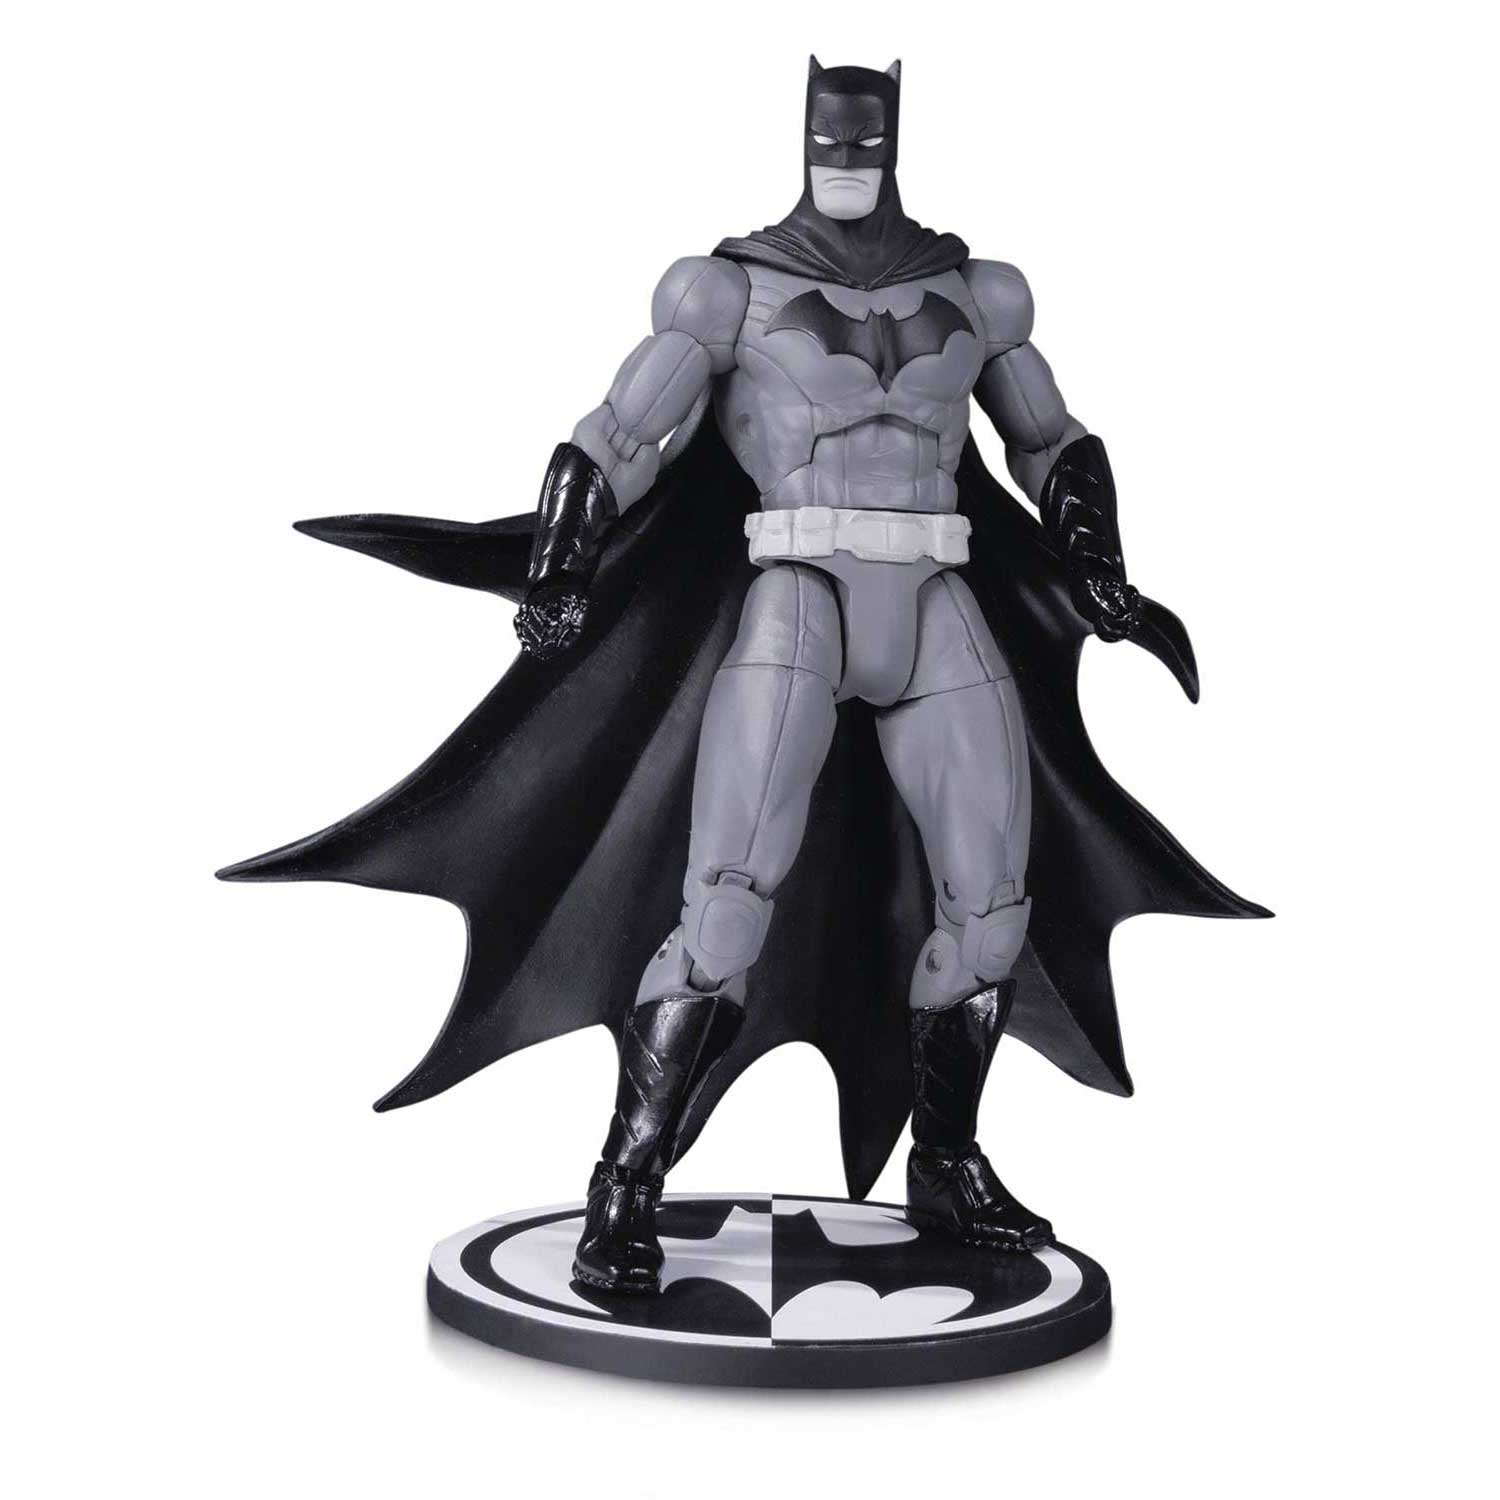 Batman Black And White Action Figure Batman By Greg Capullo